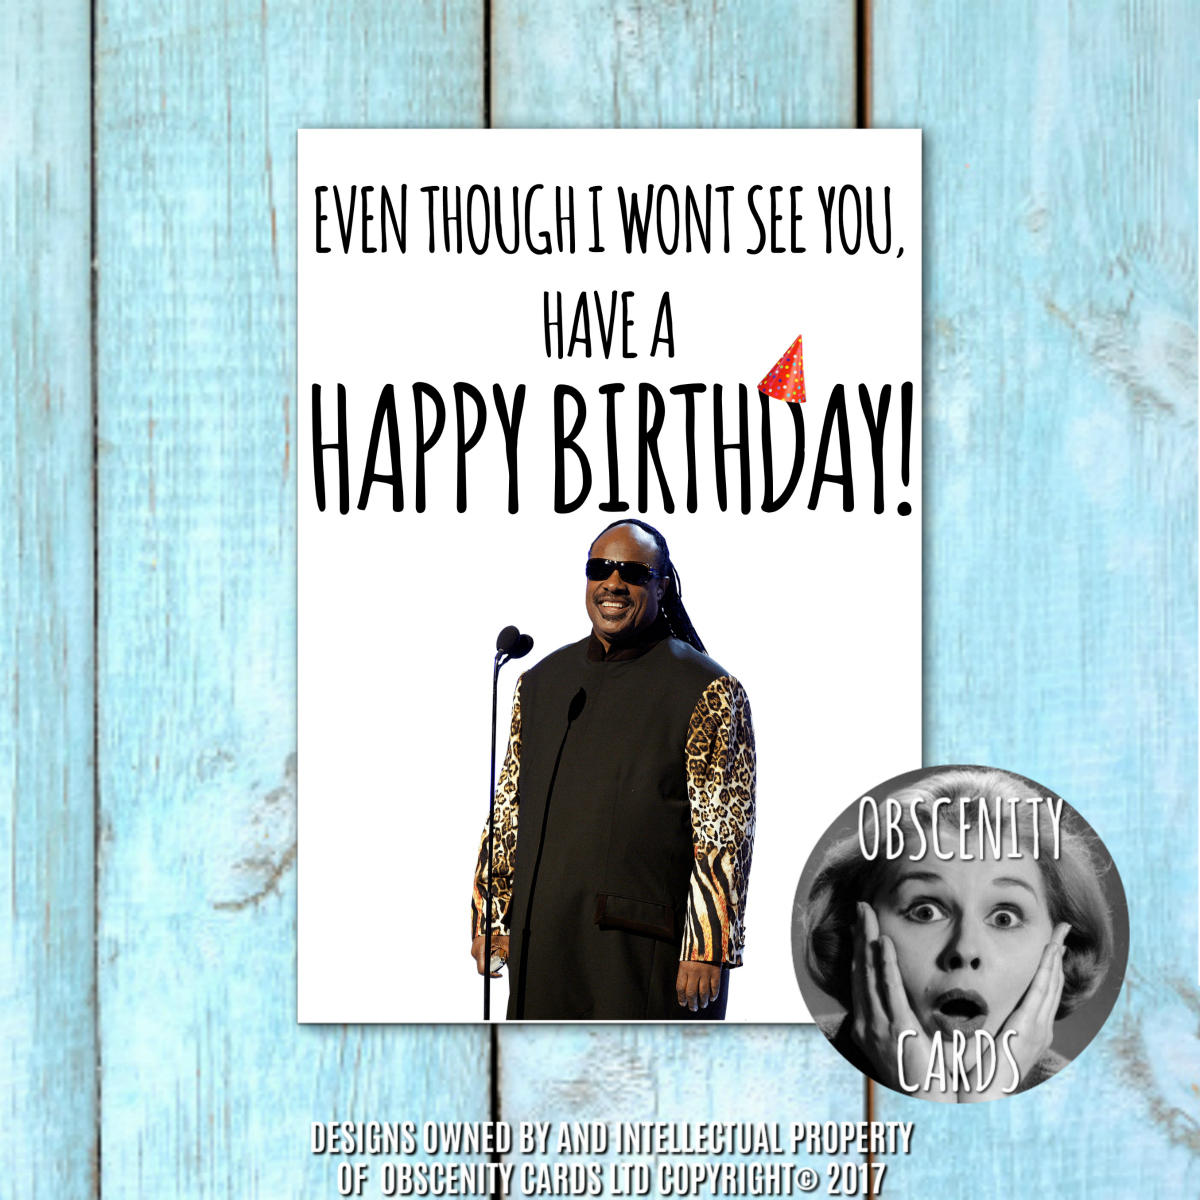 STEVIE WONDER - EVEN THOUGH I WONT SEE YOU Funny Birthday card